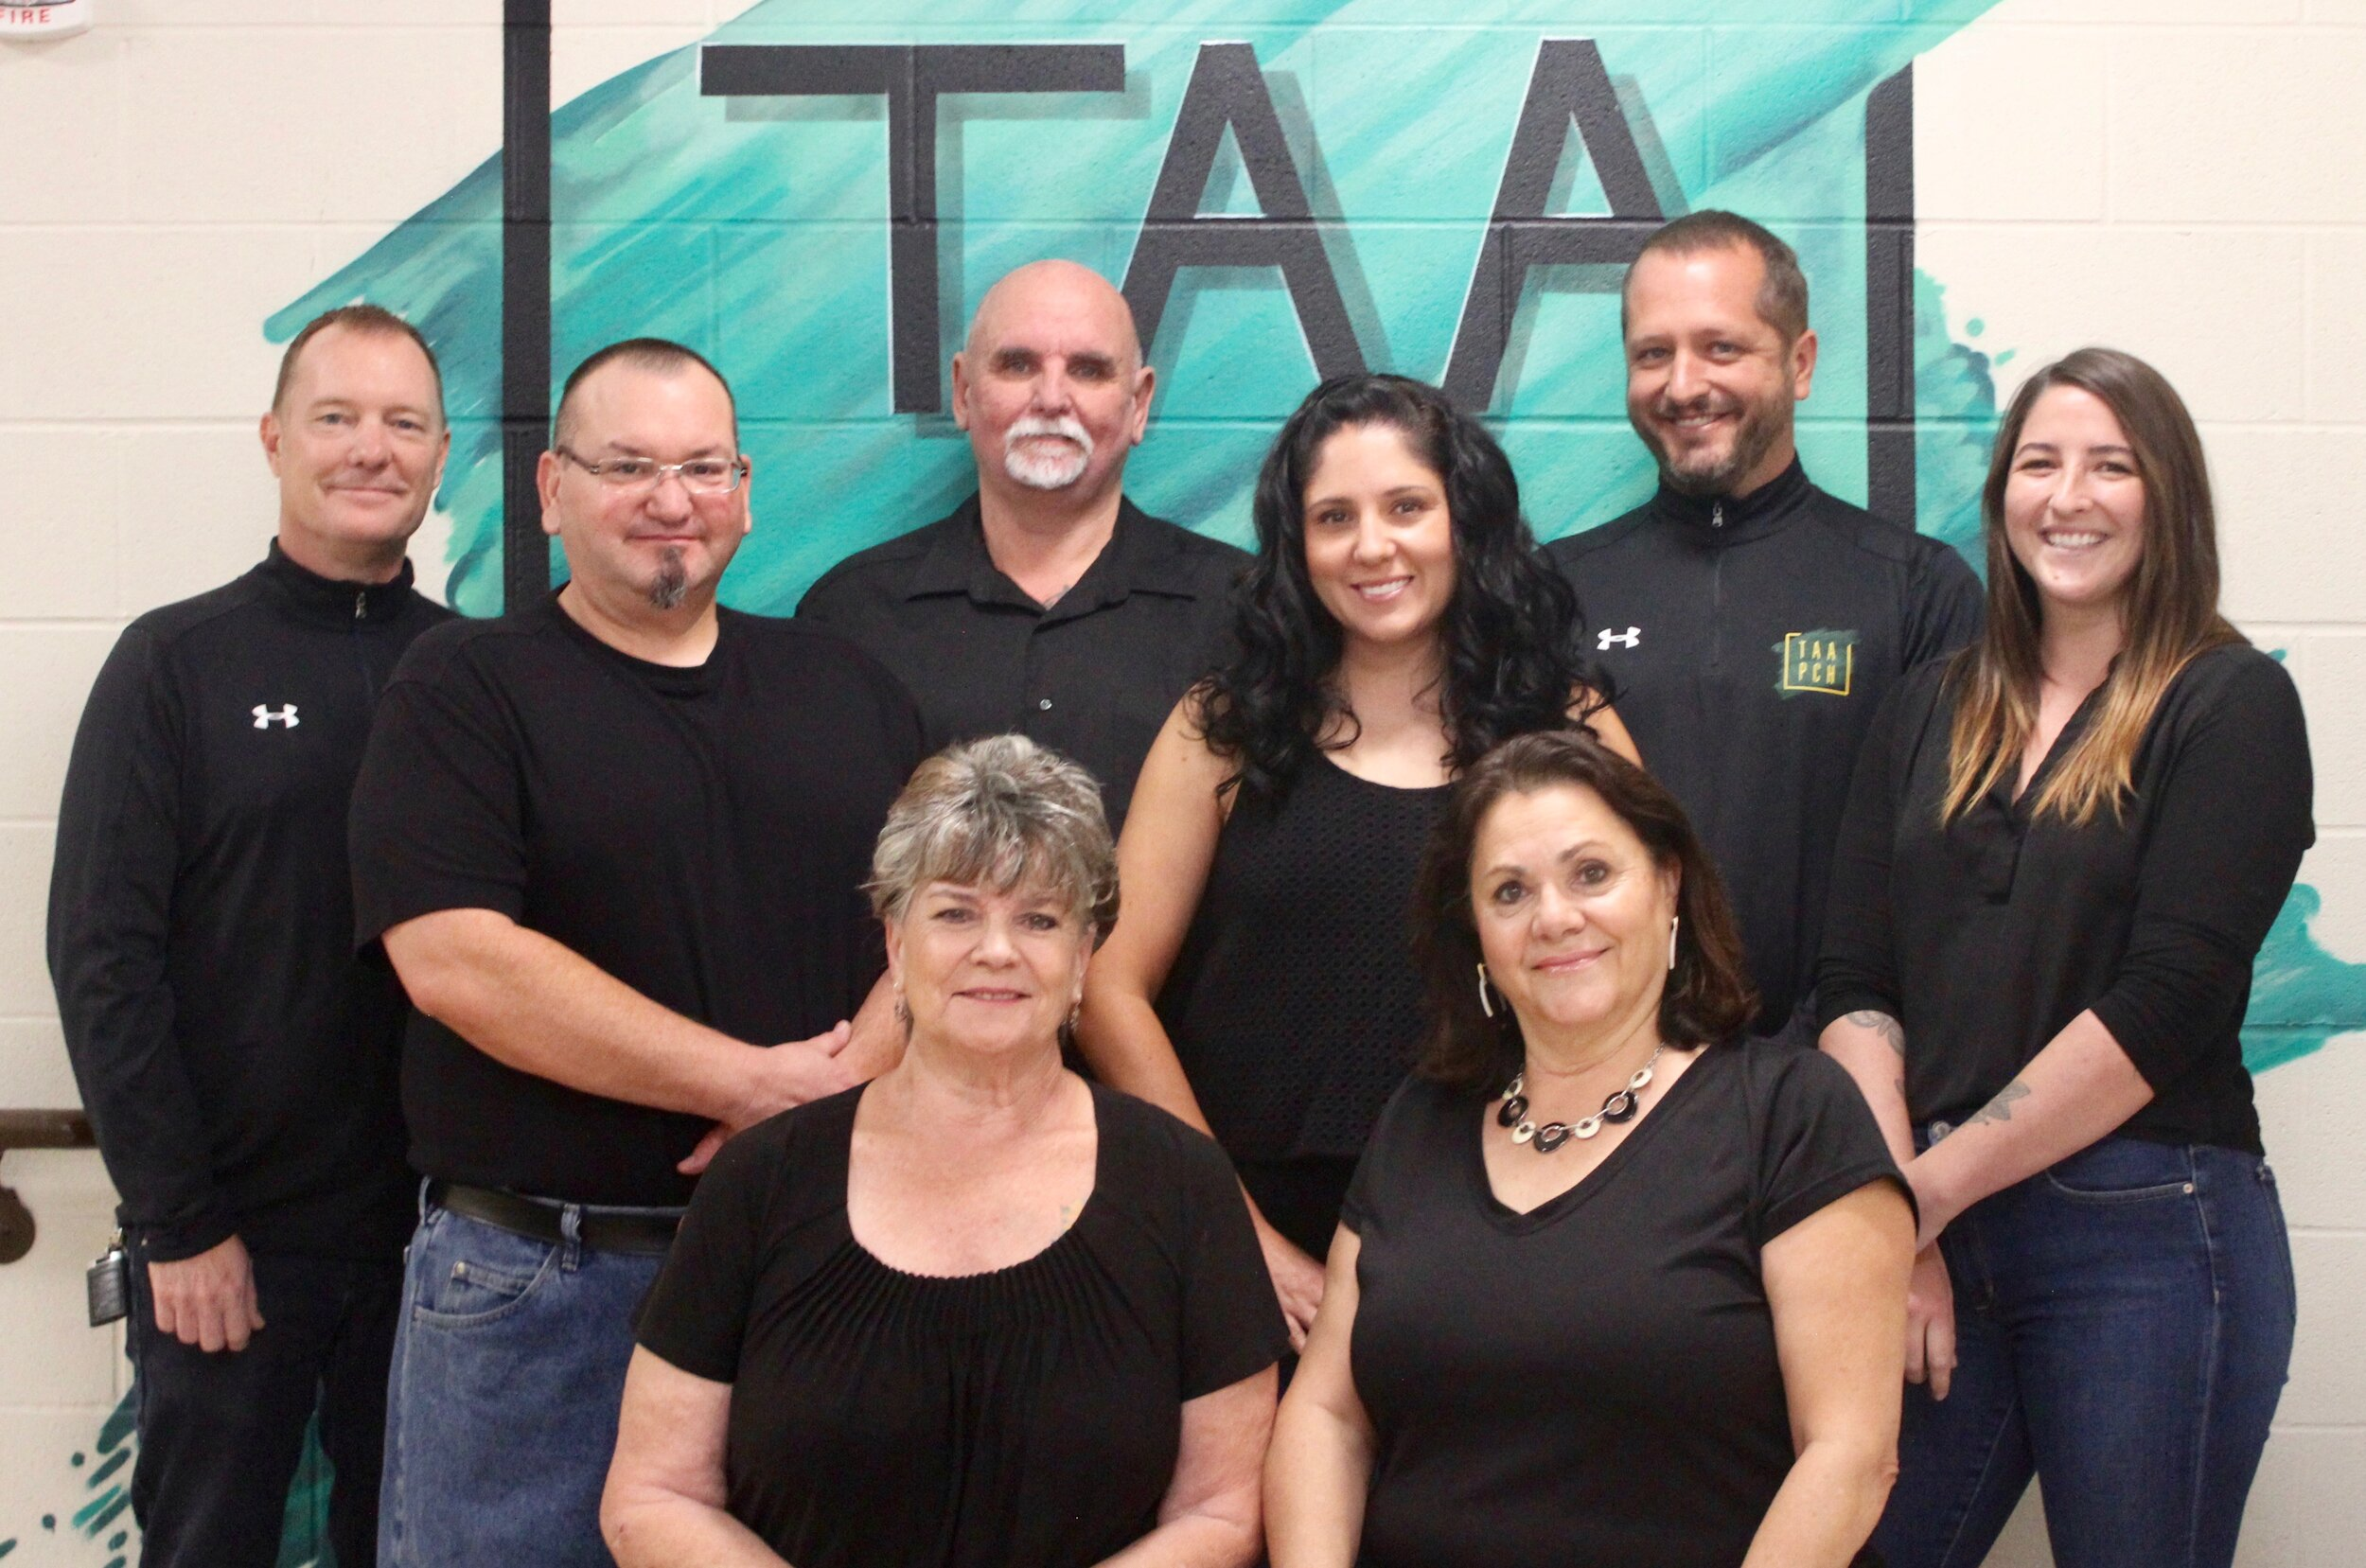 Staff members at  The Arts Academy  (left to right) include Brook Mead, Scott Santisteven, Jill Townsend, Jack Salesses, Aubrey Vialpando, Roxanne Pignanelli, Josh Muller, Taylor Gilman and not pictured Kennedy Pugh.